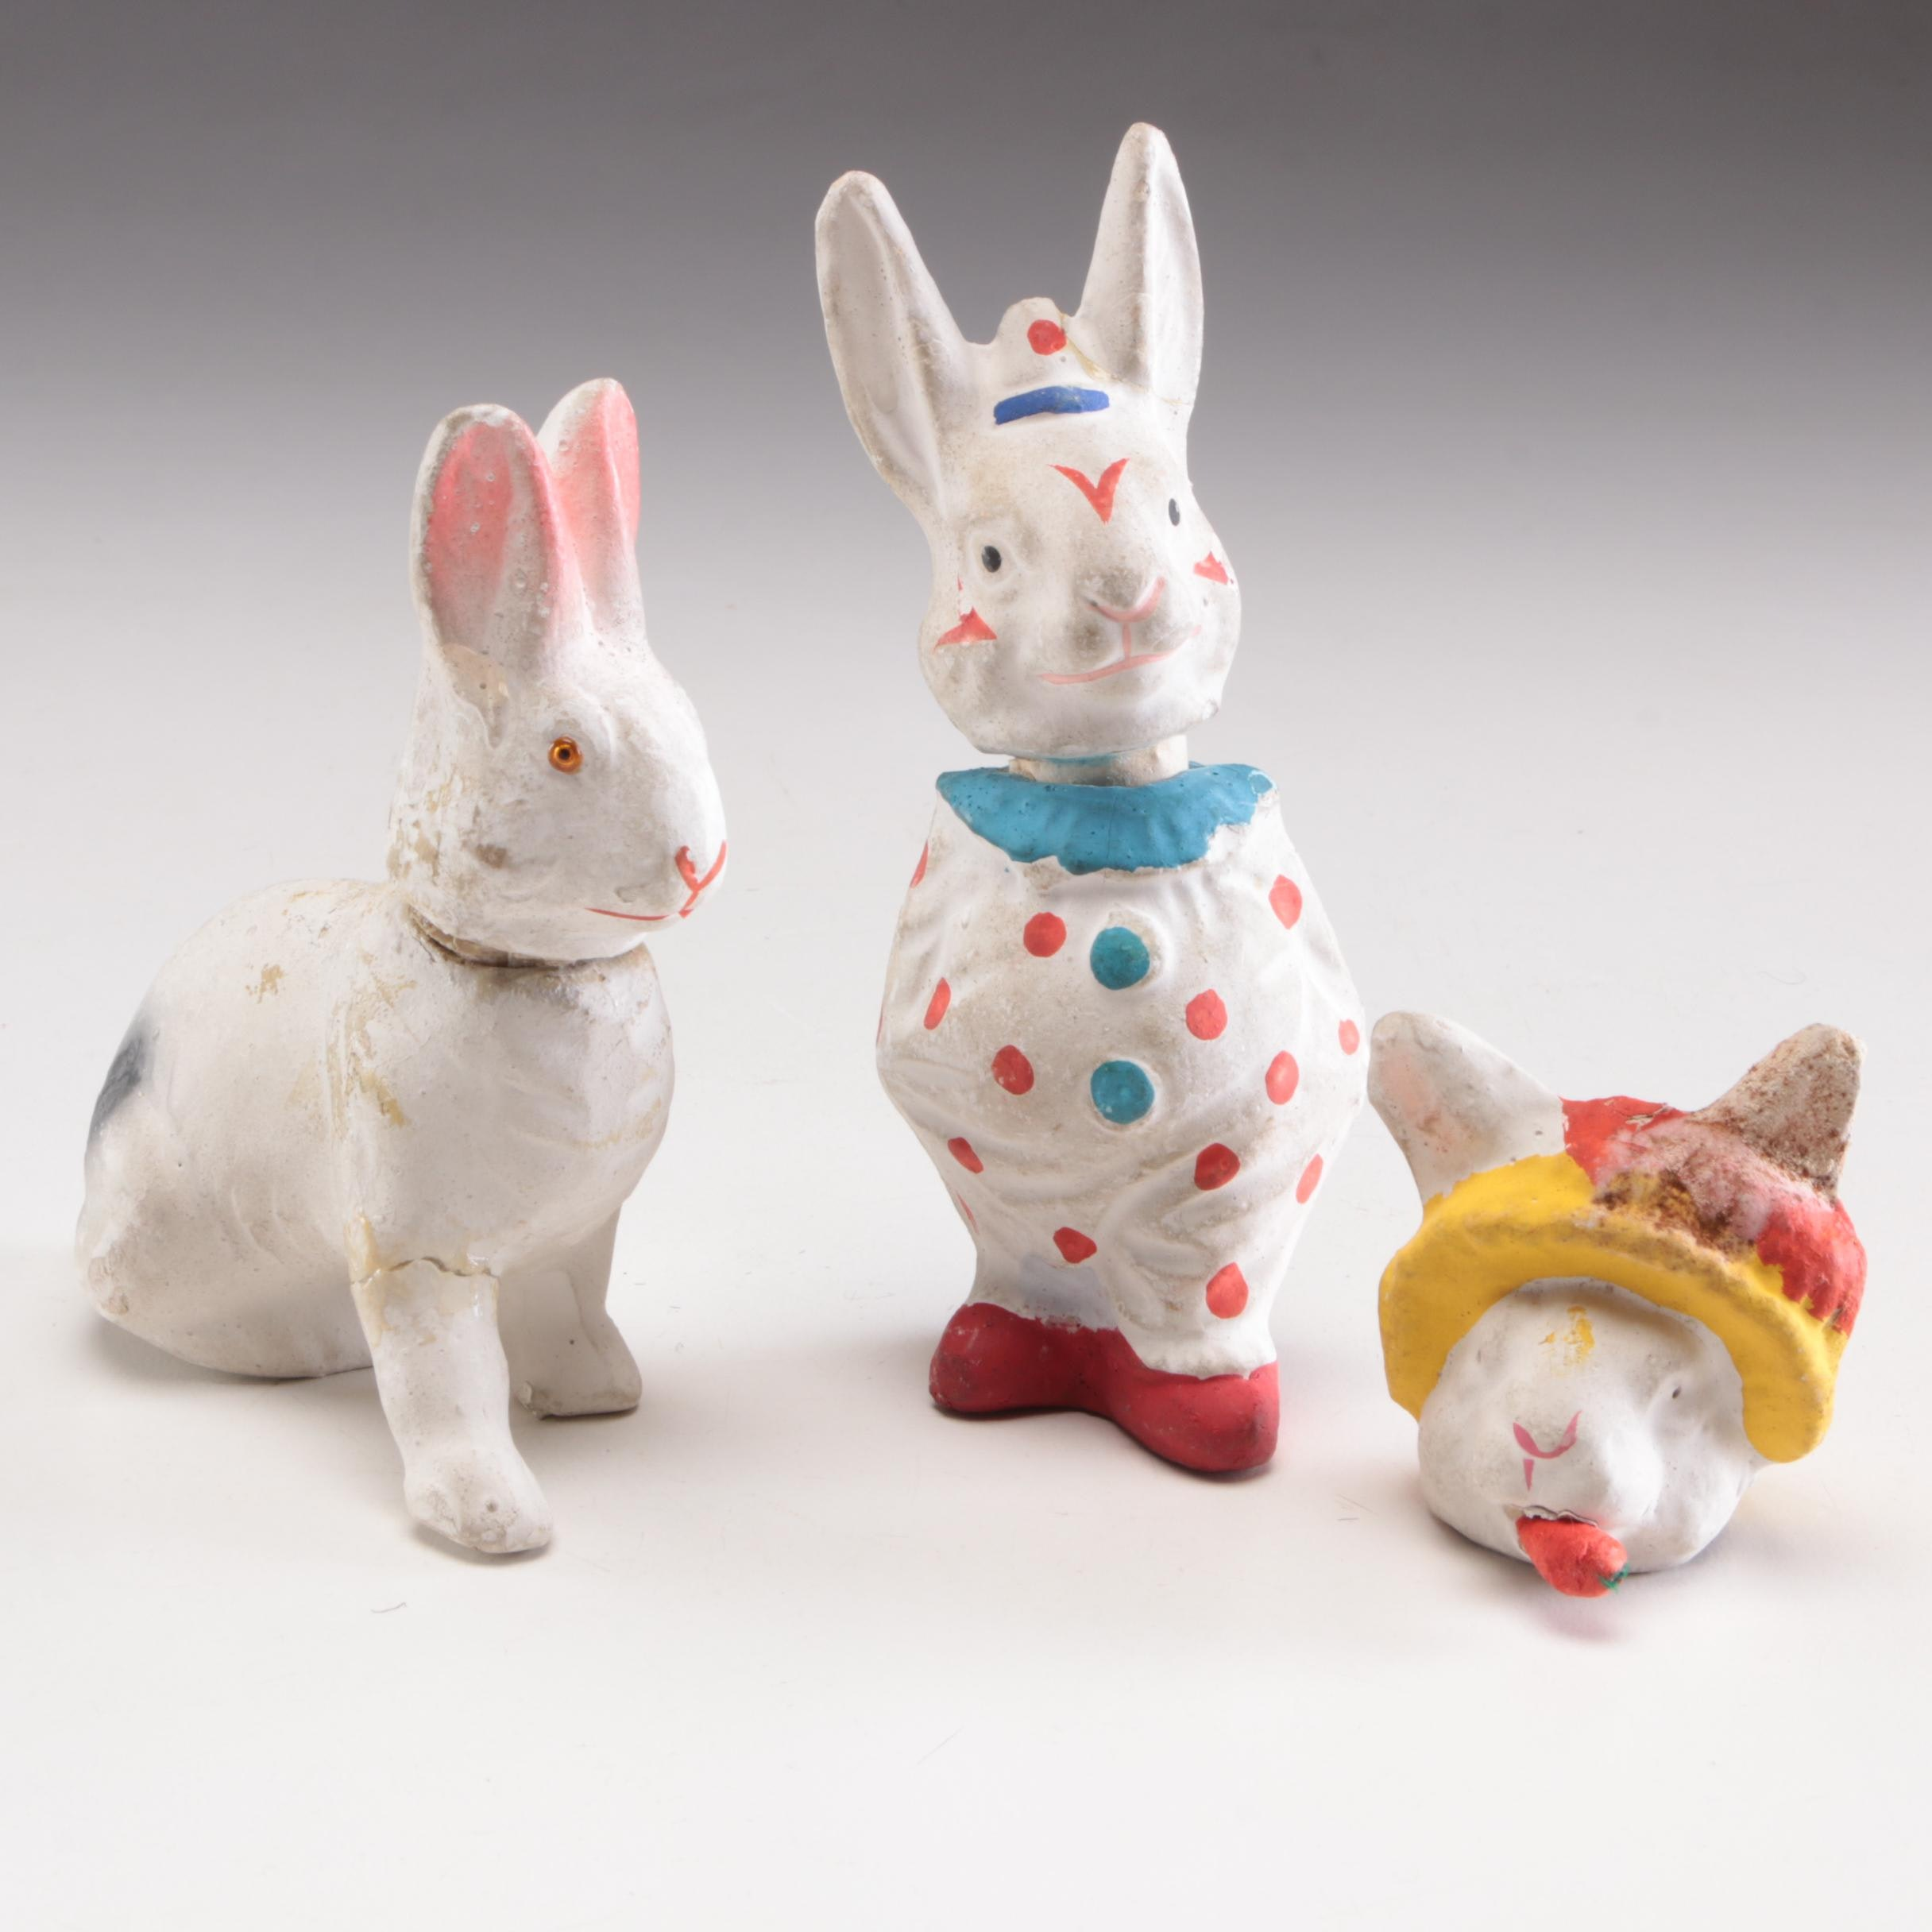 Papier-Mâché Candy Container Rabbit Figurines, Early to Mid 20th Century